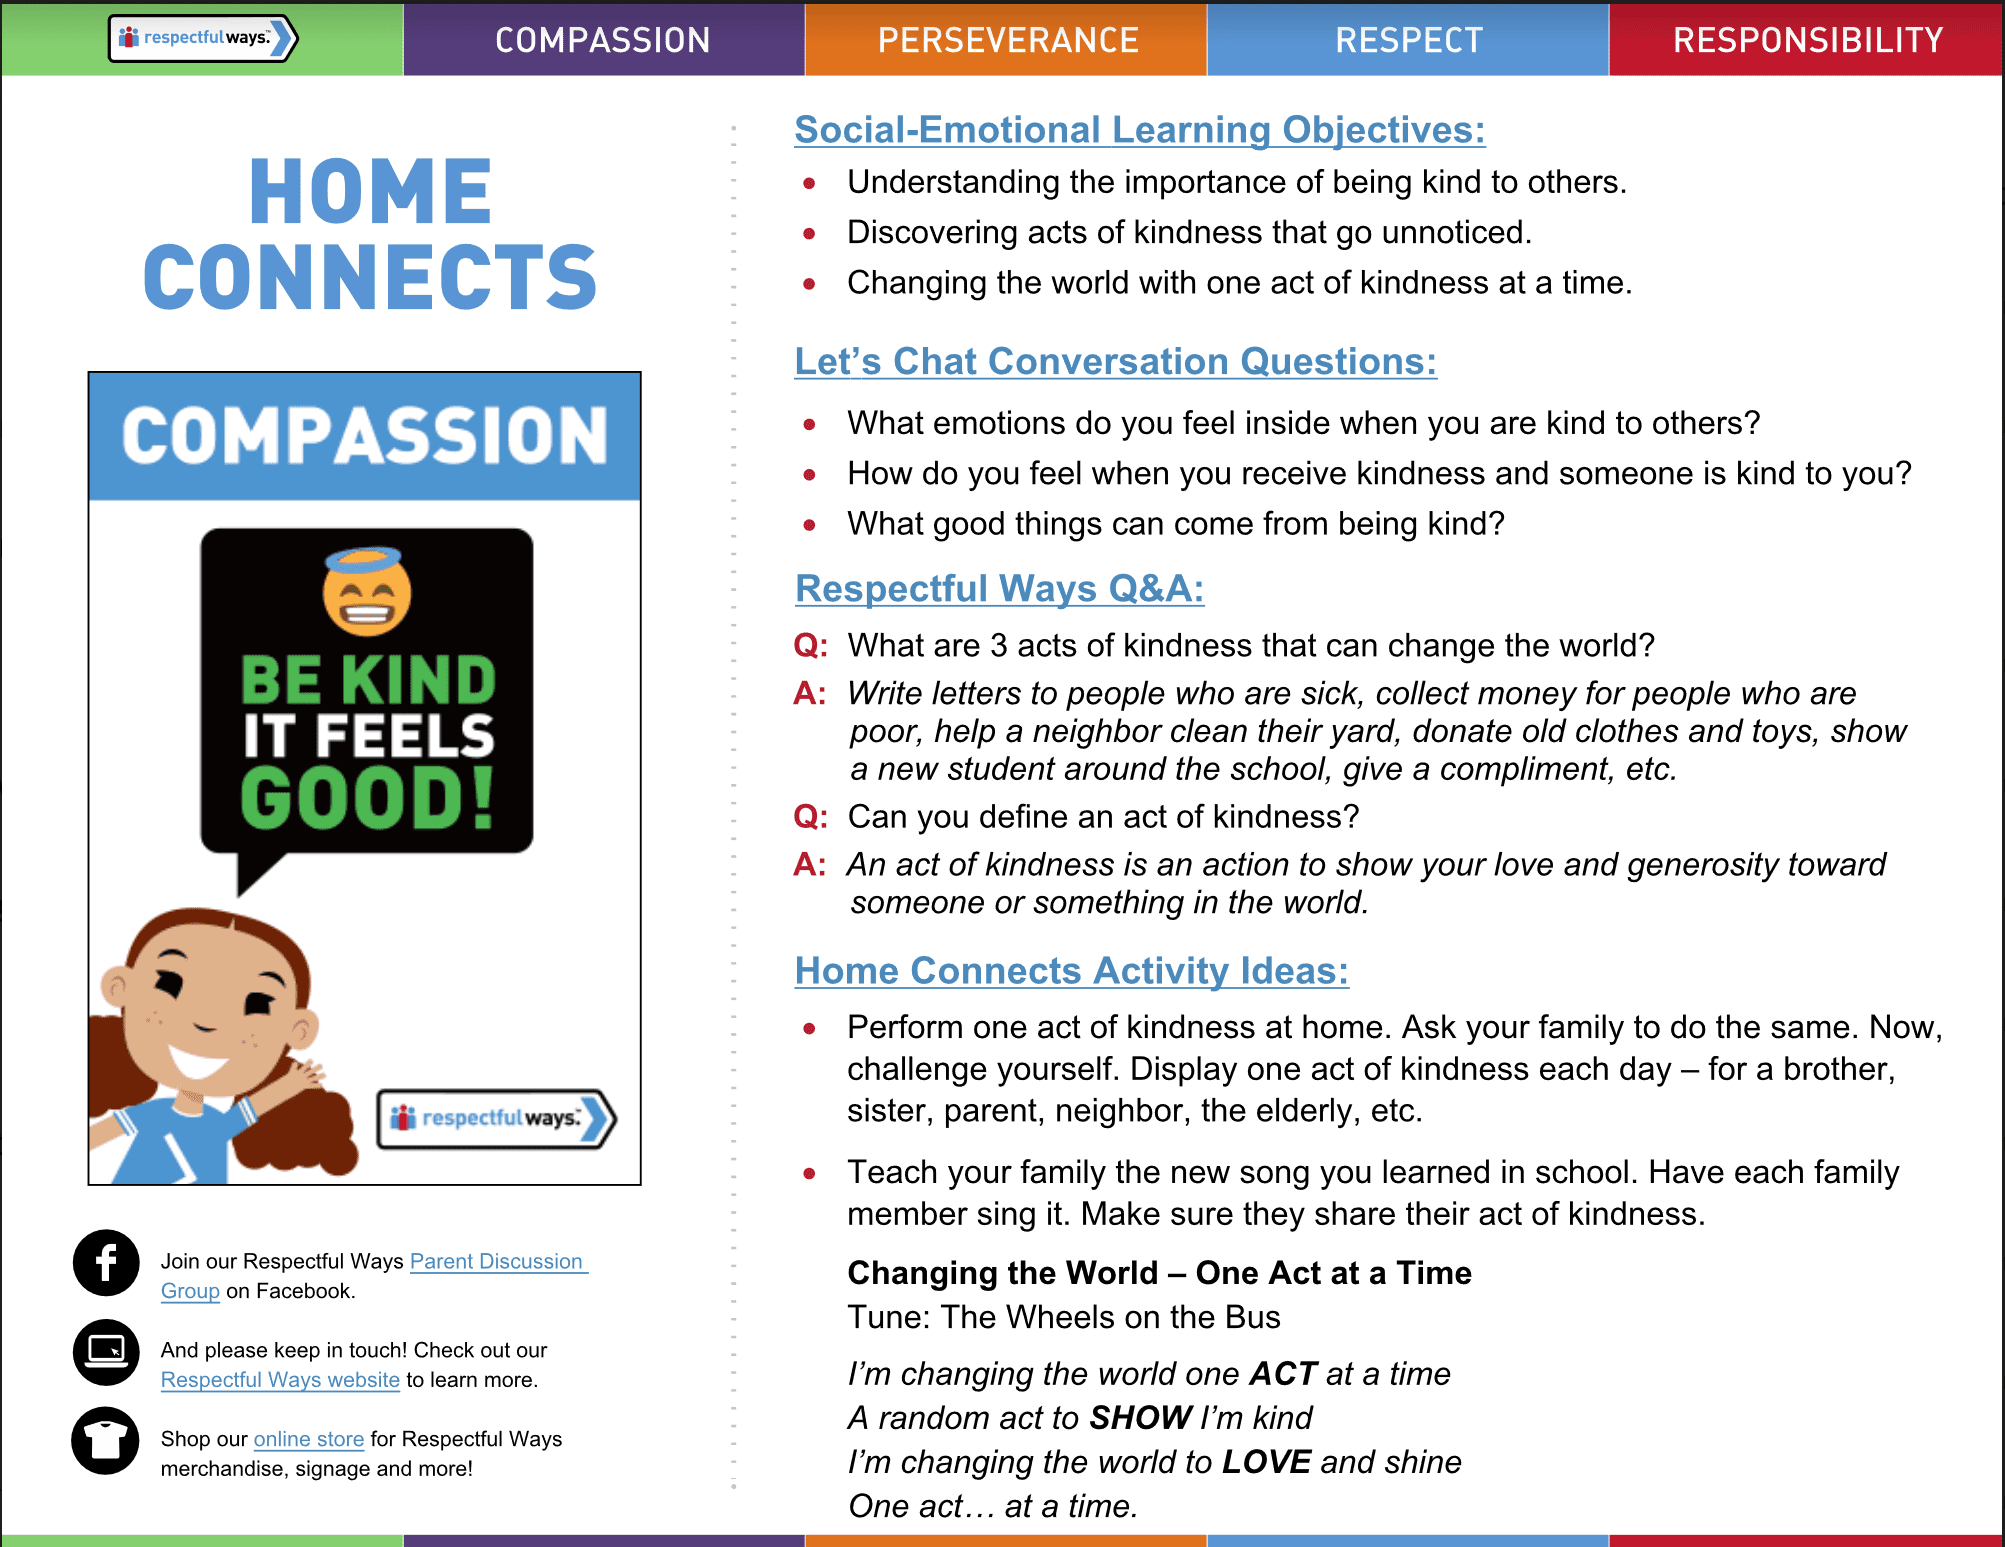 Home Connects